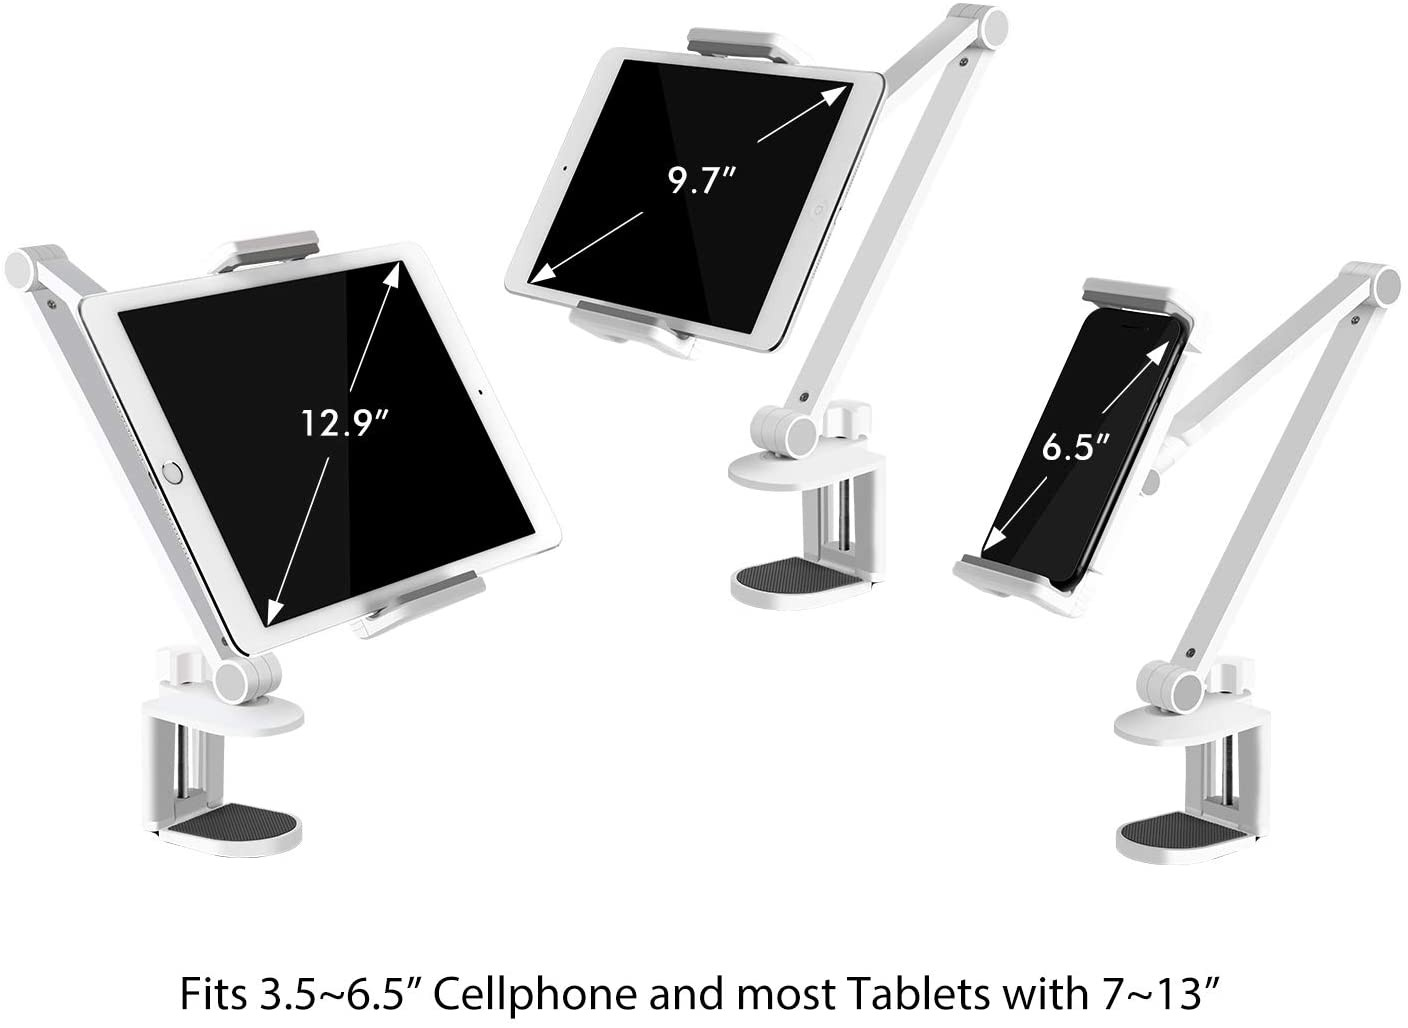 Viozon Tablet Stand Holder Mount, Rotate 360 Degrees of Flexible, Height and Angle Adjustable, High-Grade Aluminium Alloy Long Arm Compatible with 4-13 Mobile Phone and Tablet - White, AP-7LCW